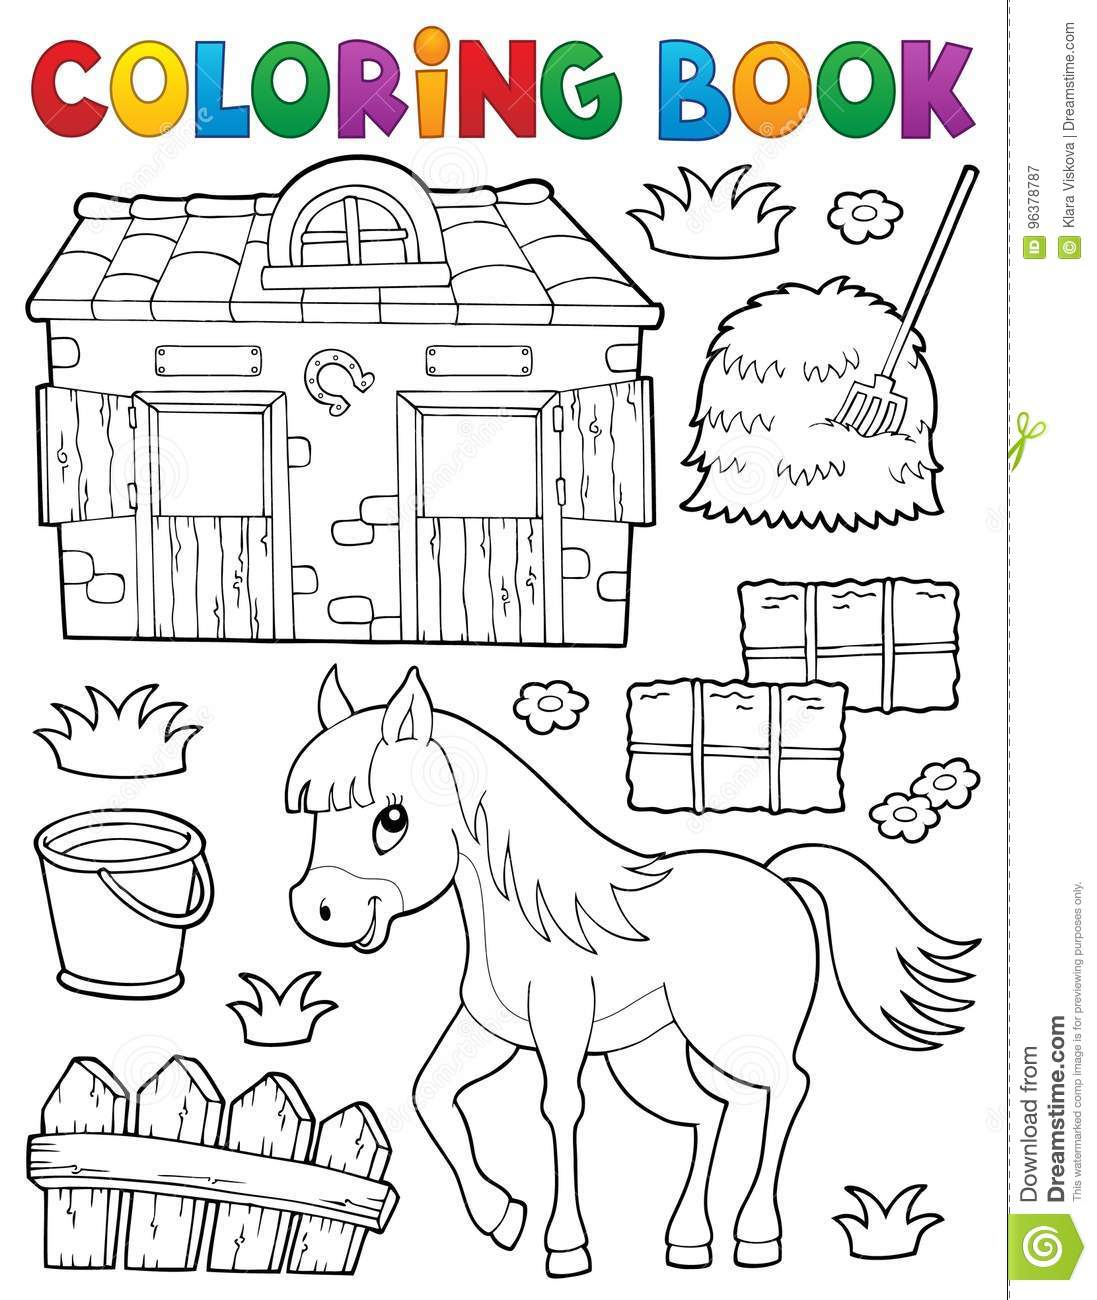 Royalty Free Vector Download Coloring Book Horse And Related Objects Stock